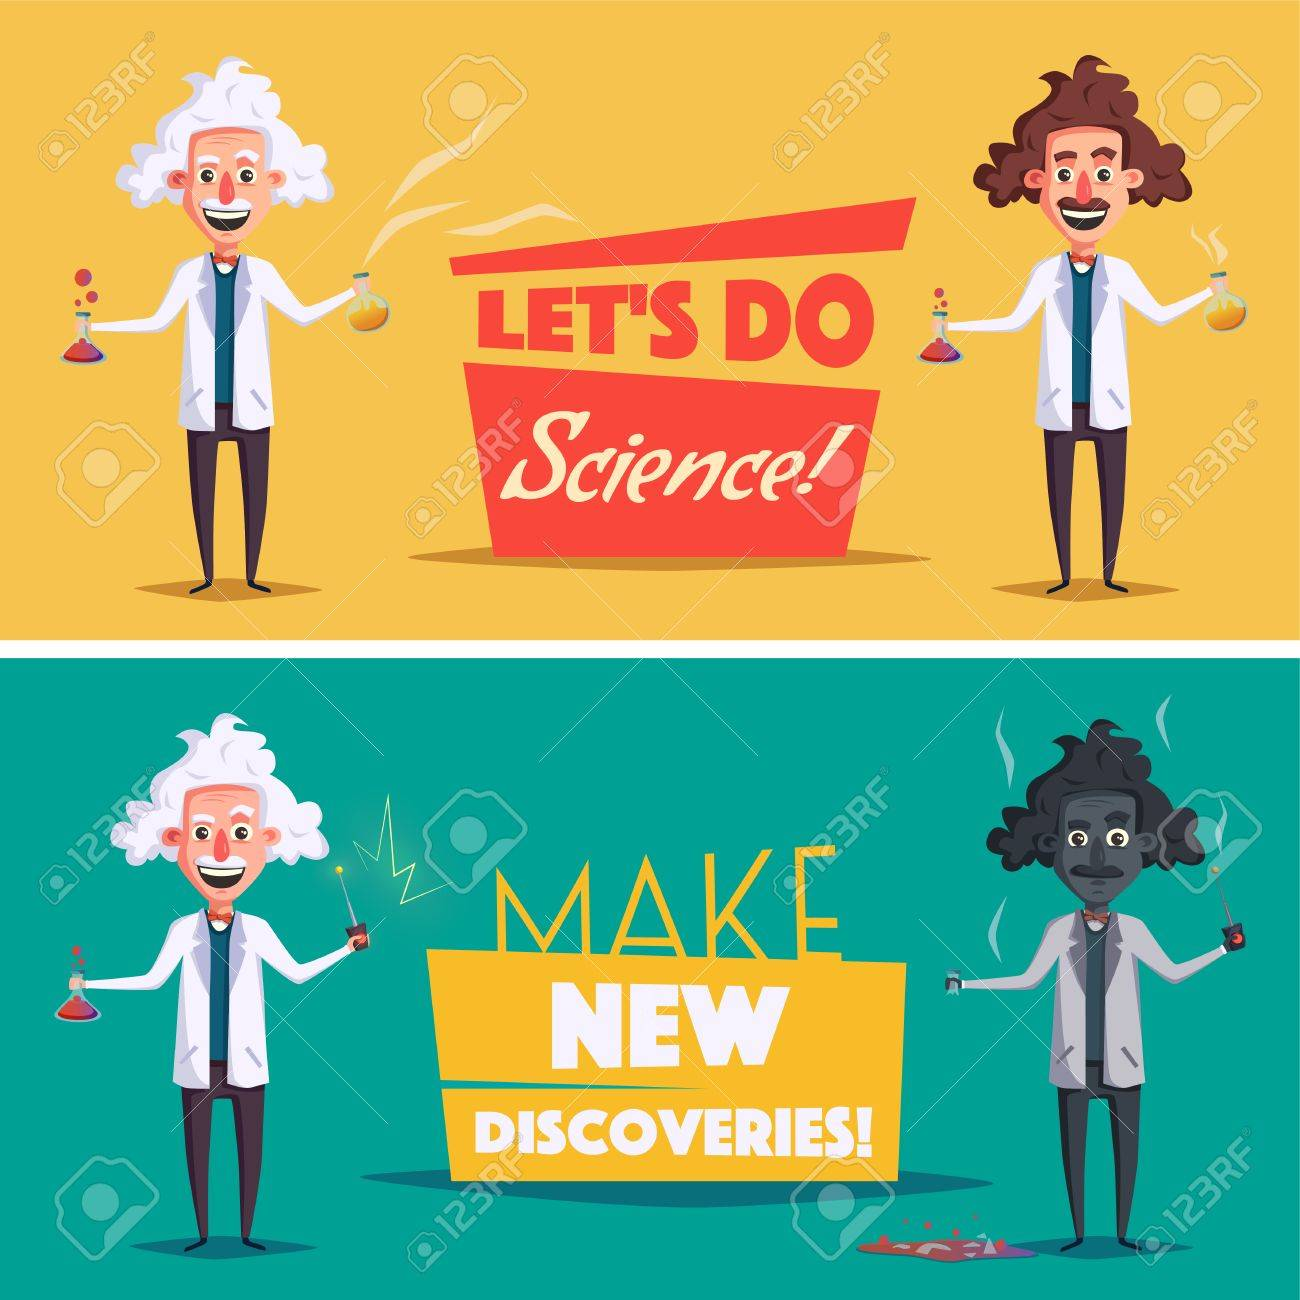 hight resolution of photo stock vector crazy old scientist funny character cartoon vector illustration mad professor science experiment rem